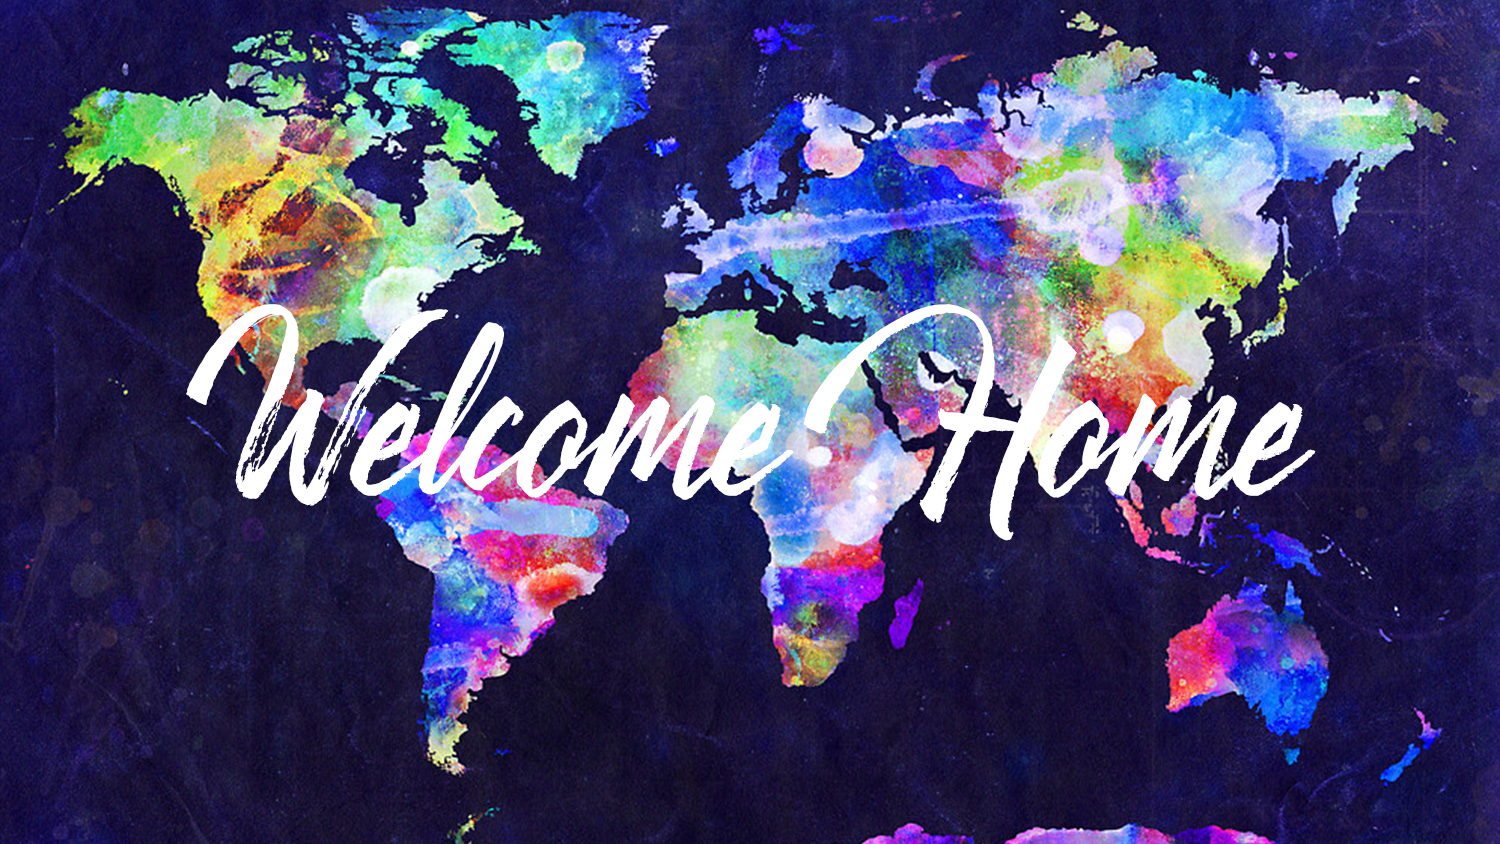 colorful worldwide map of nations around the world saying welcome home